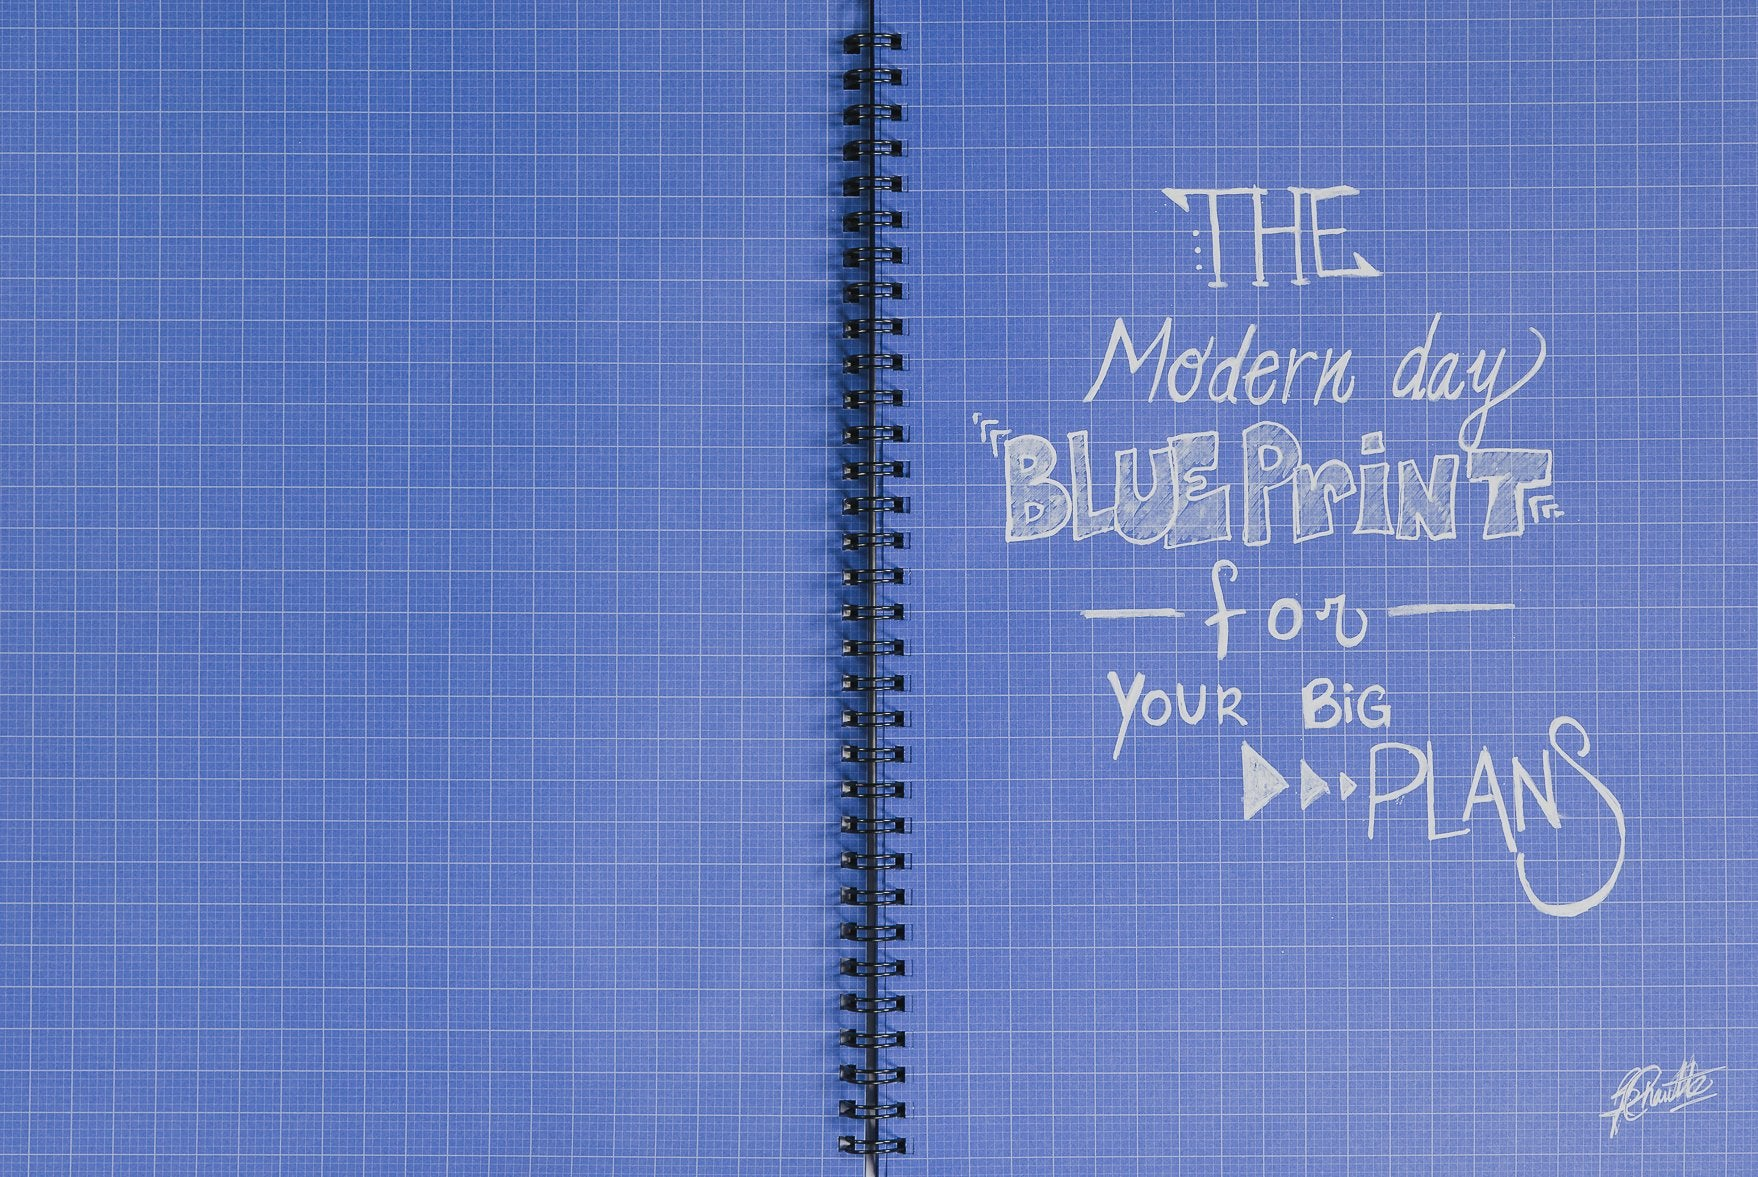 The BLU Notebook Set (1 Notebook & 1 FREE Pen)